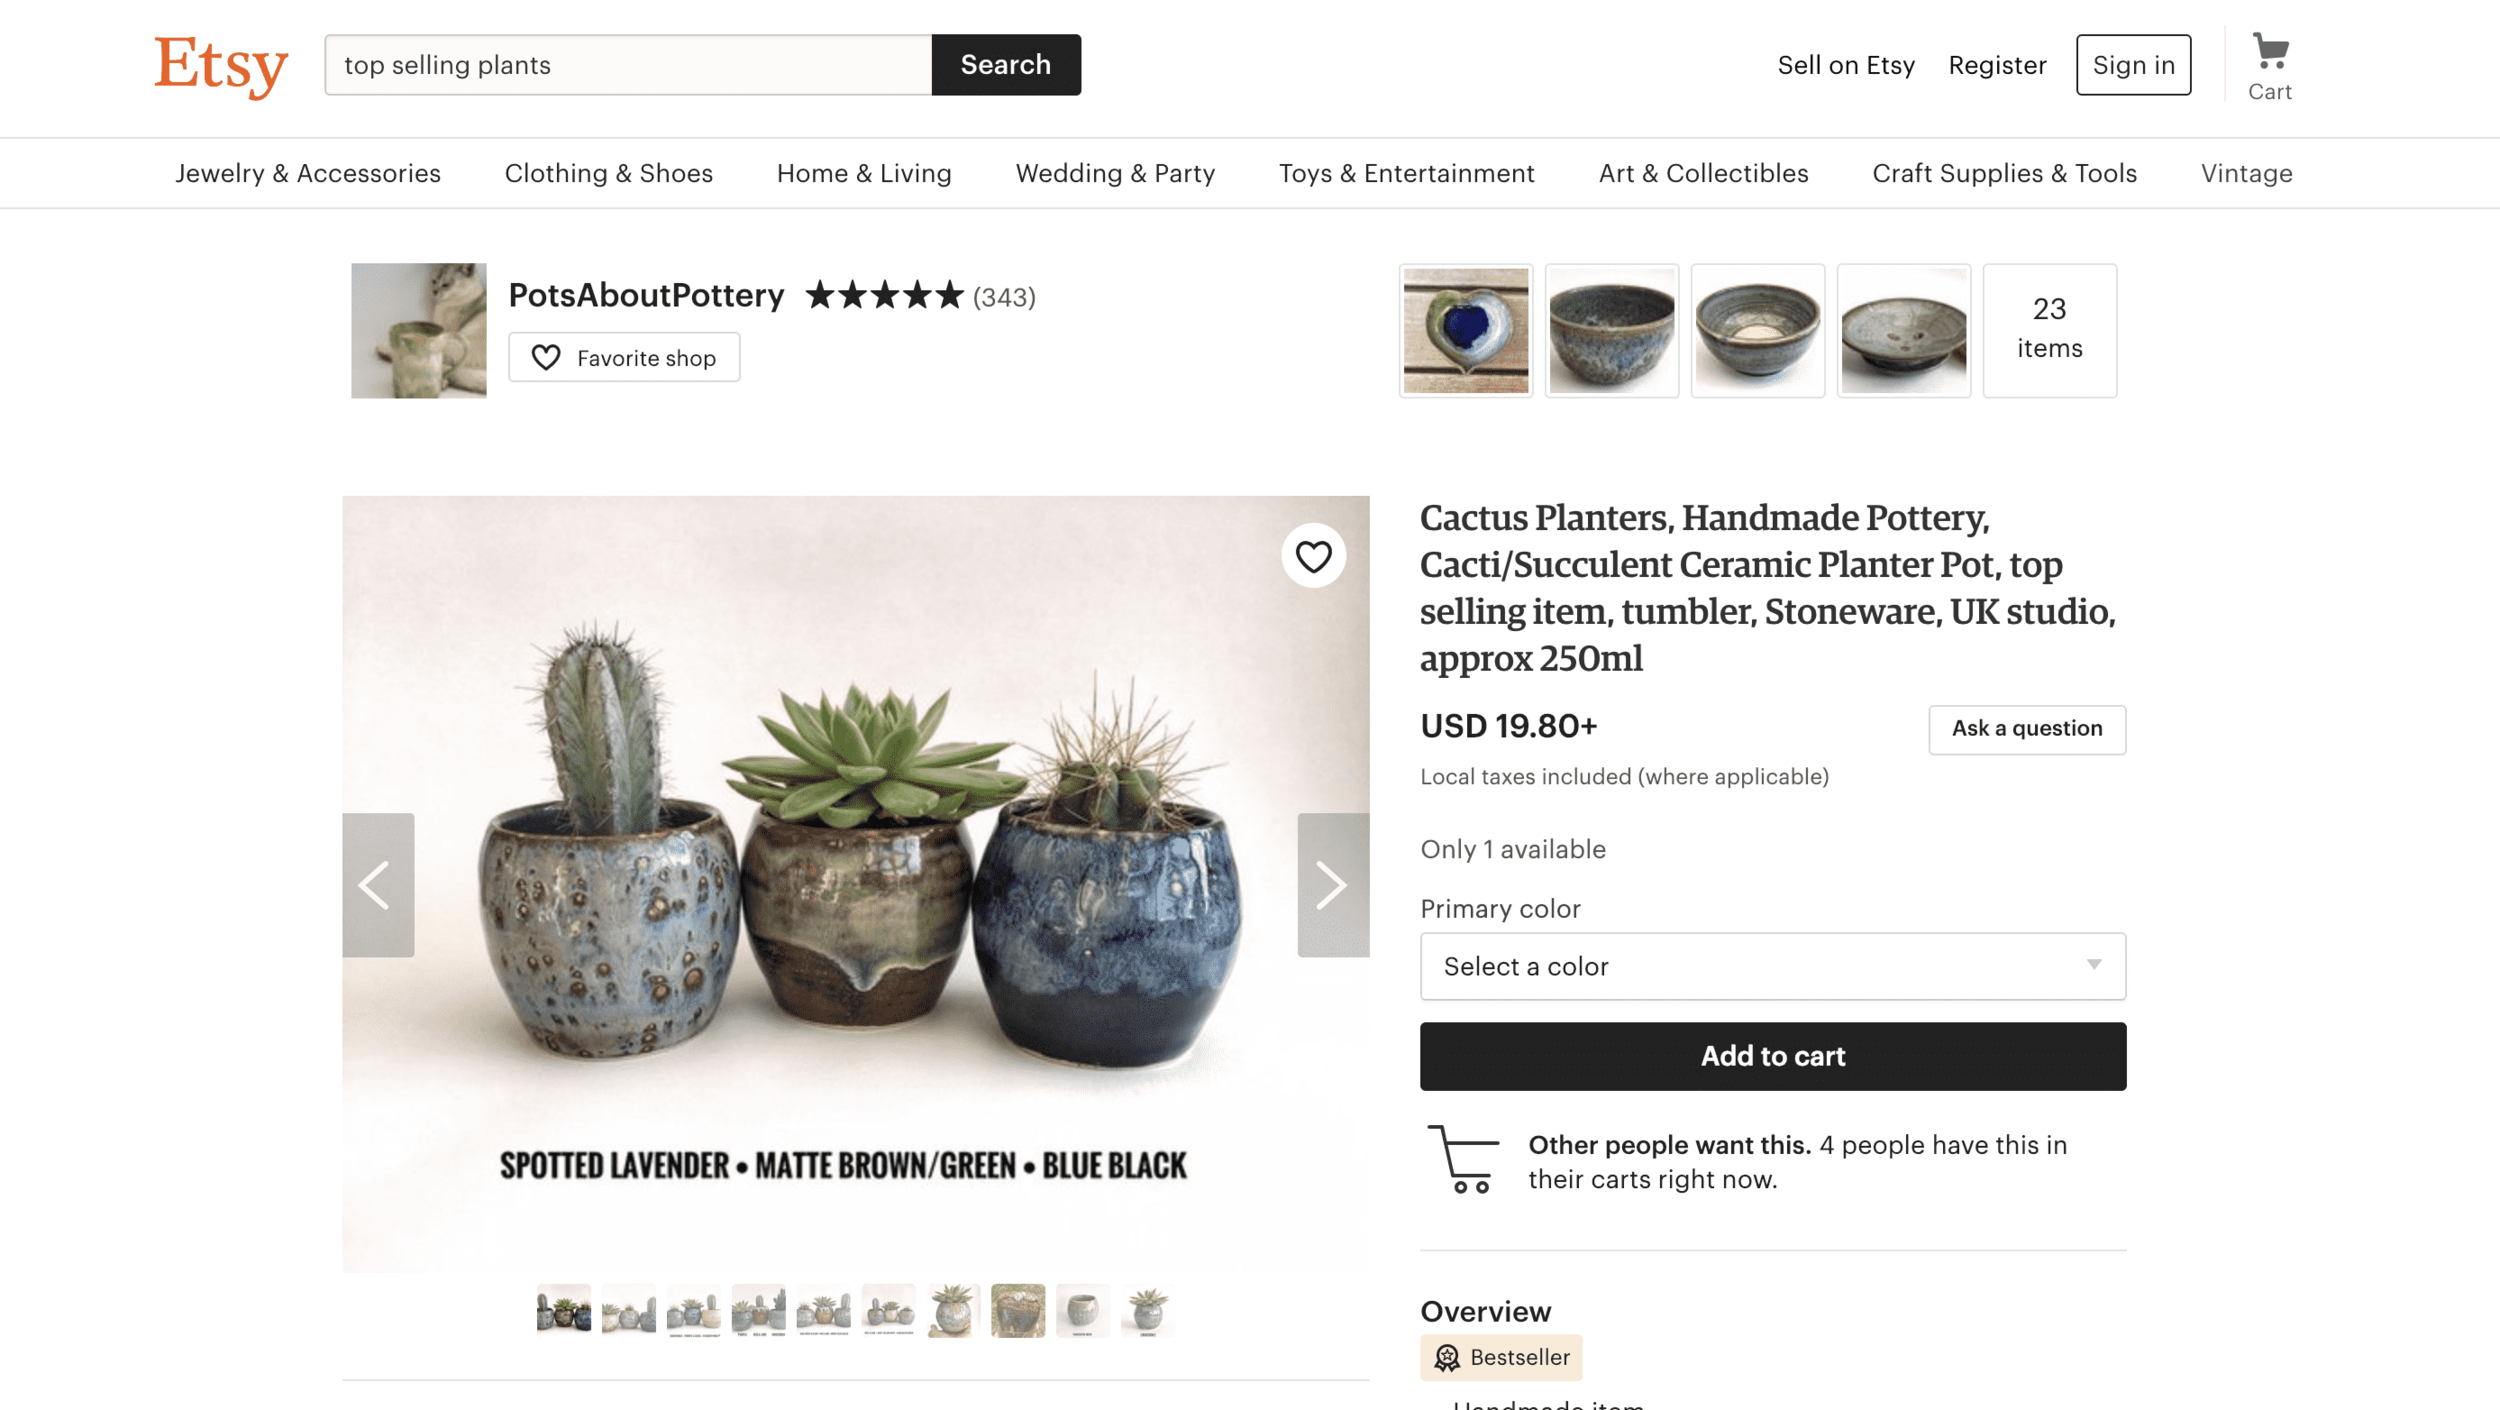 Example of an online store